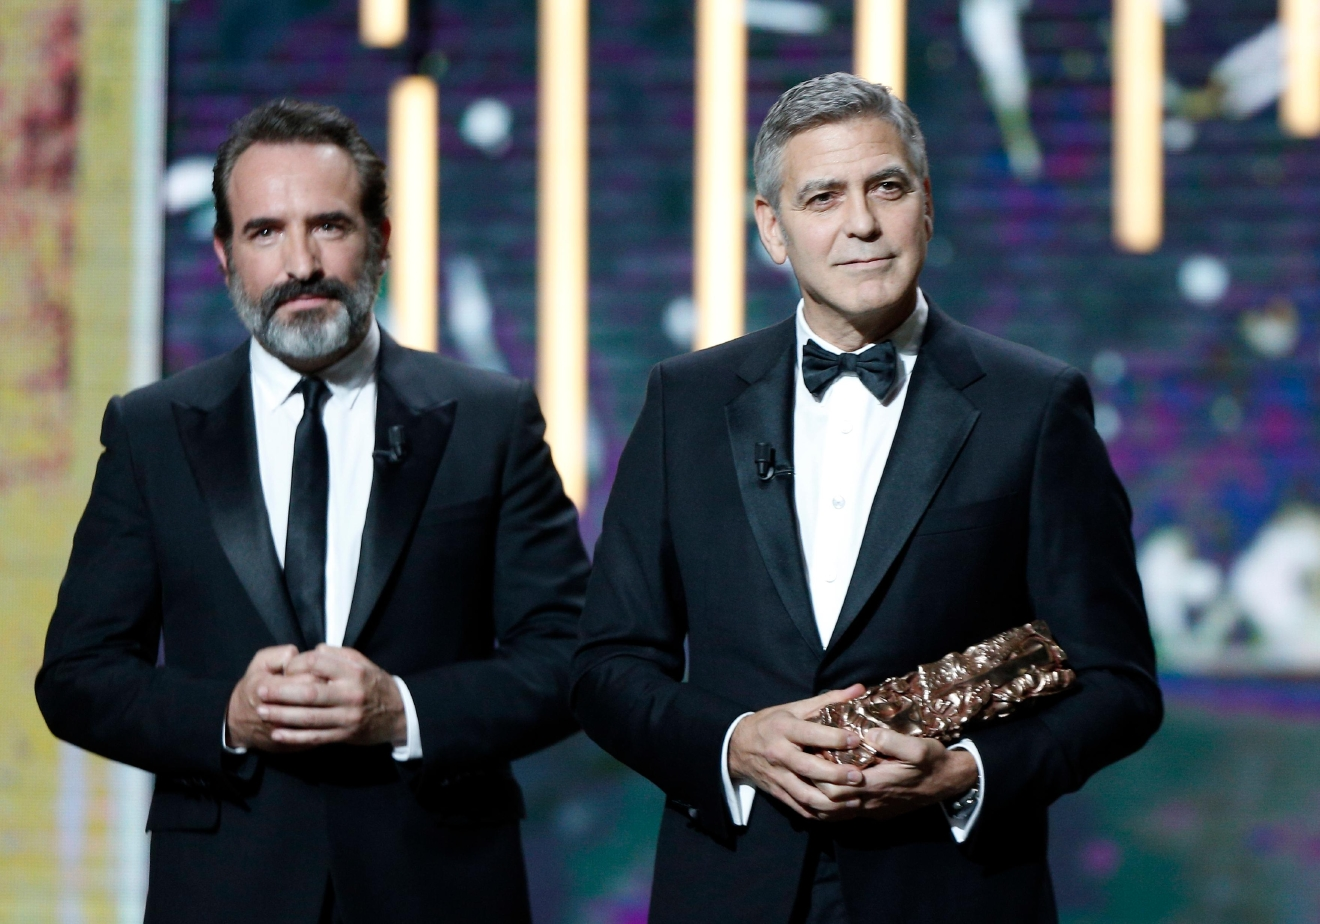 Clooney uses cesar award to warn about hate in age of for Age dujardin